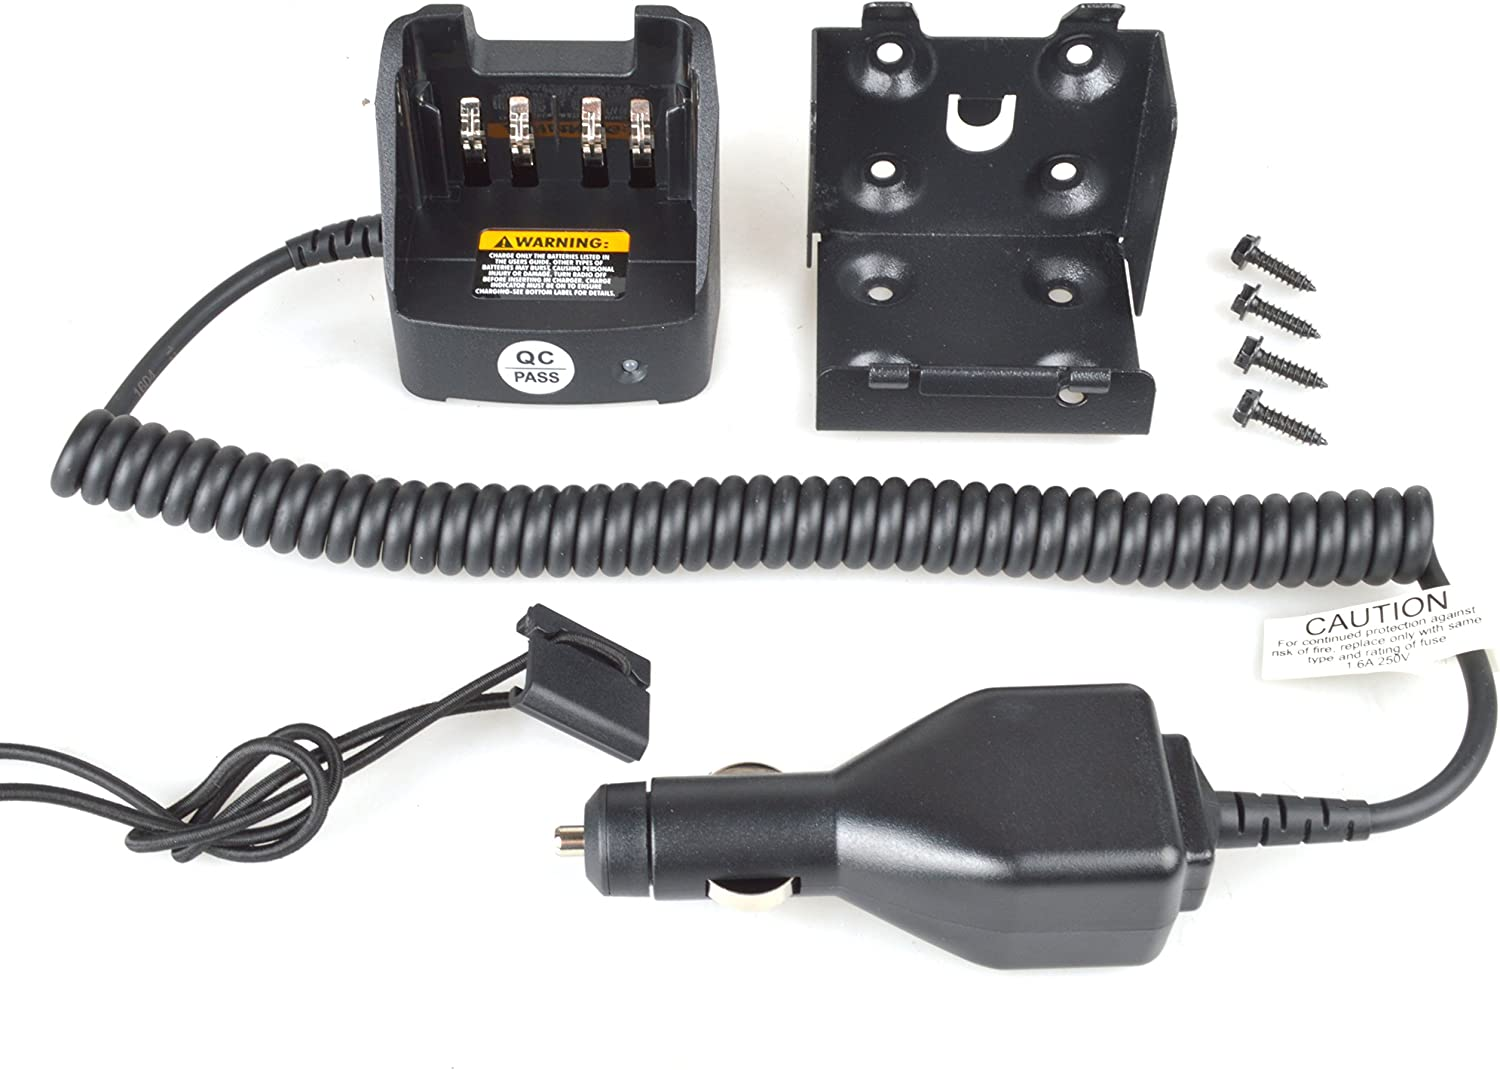 Impact Rapid Vehicle Car Charger for Motorola XPR3500 XPR6500 XPR7550 Radio